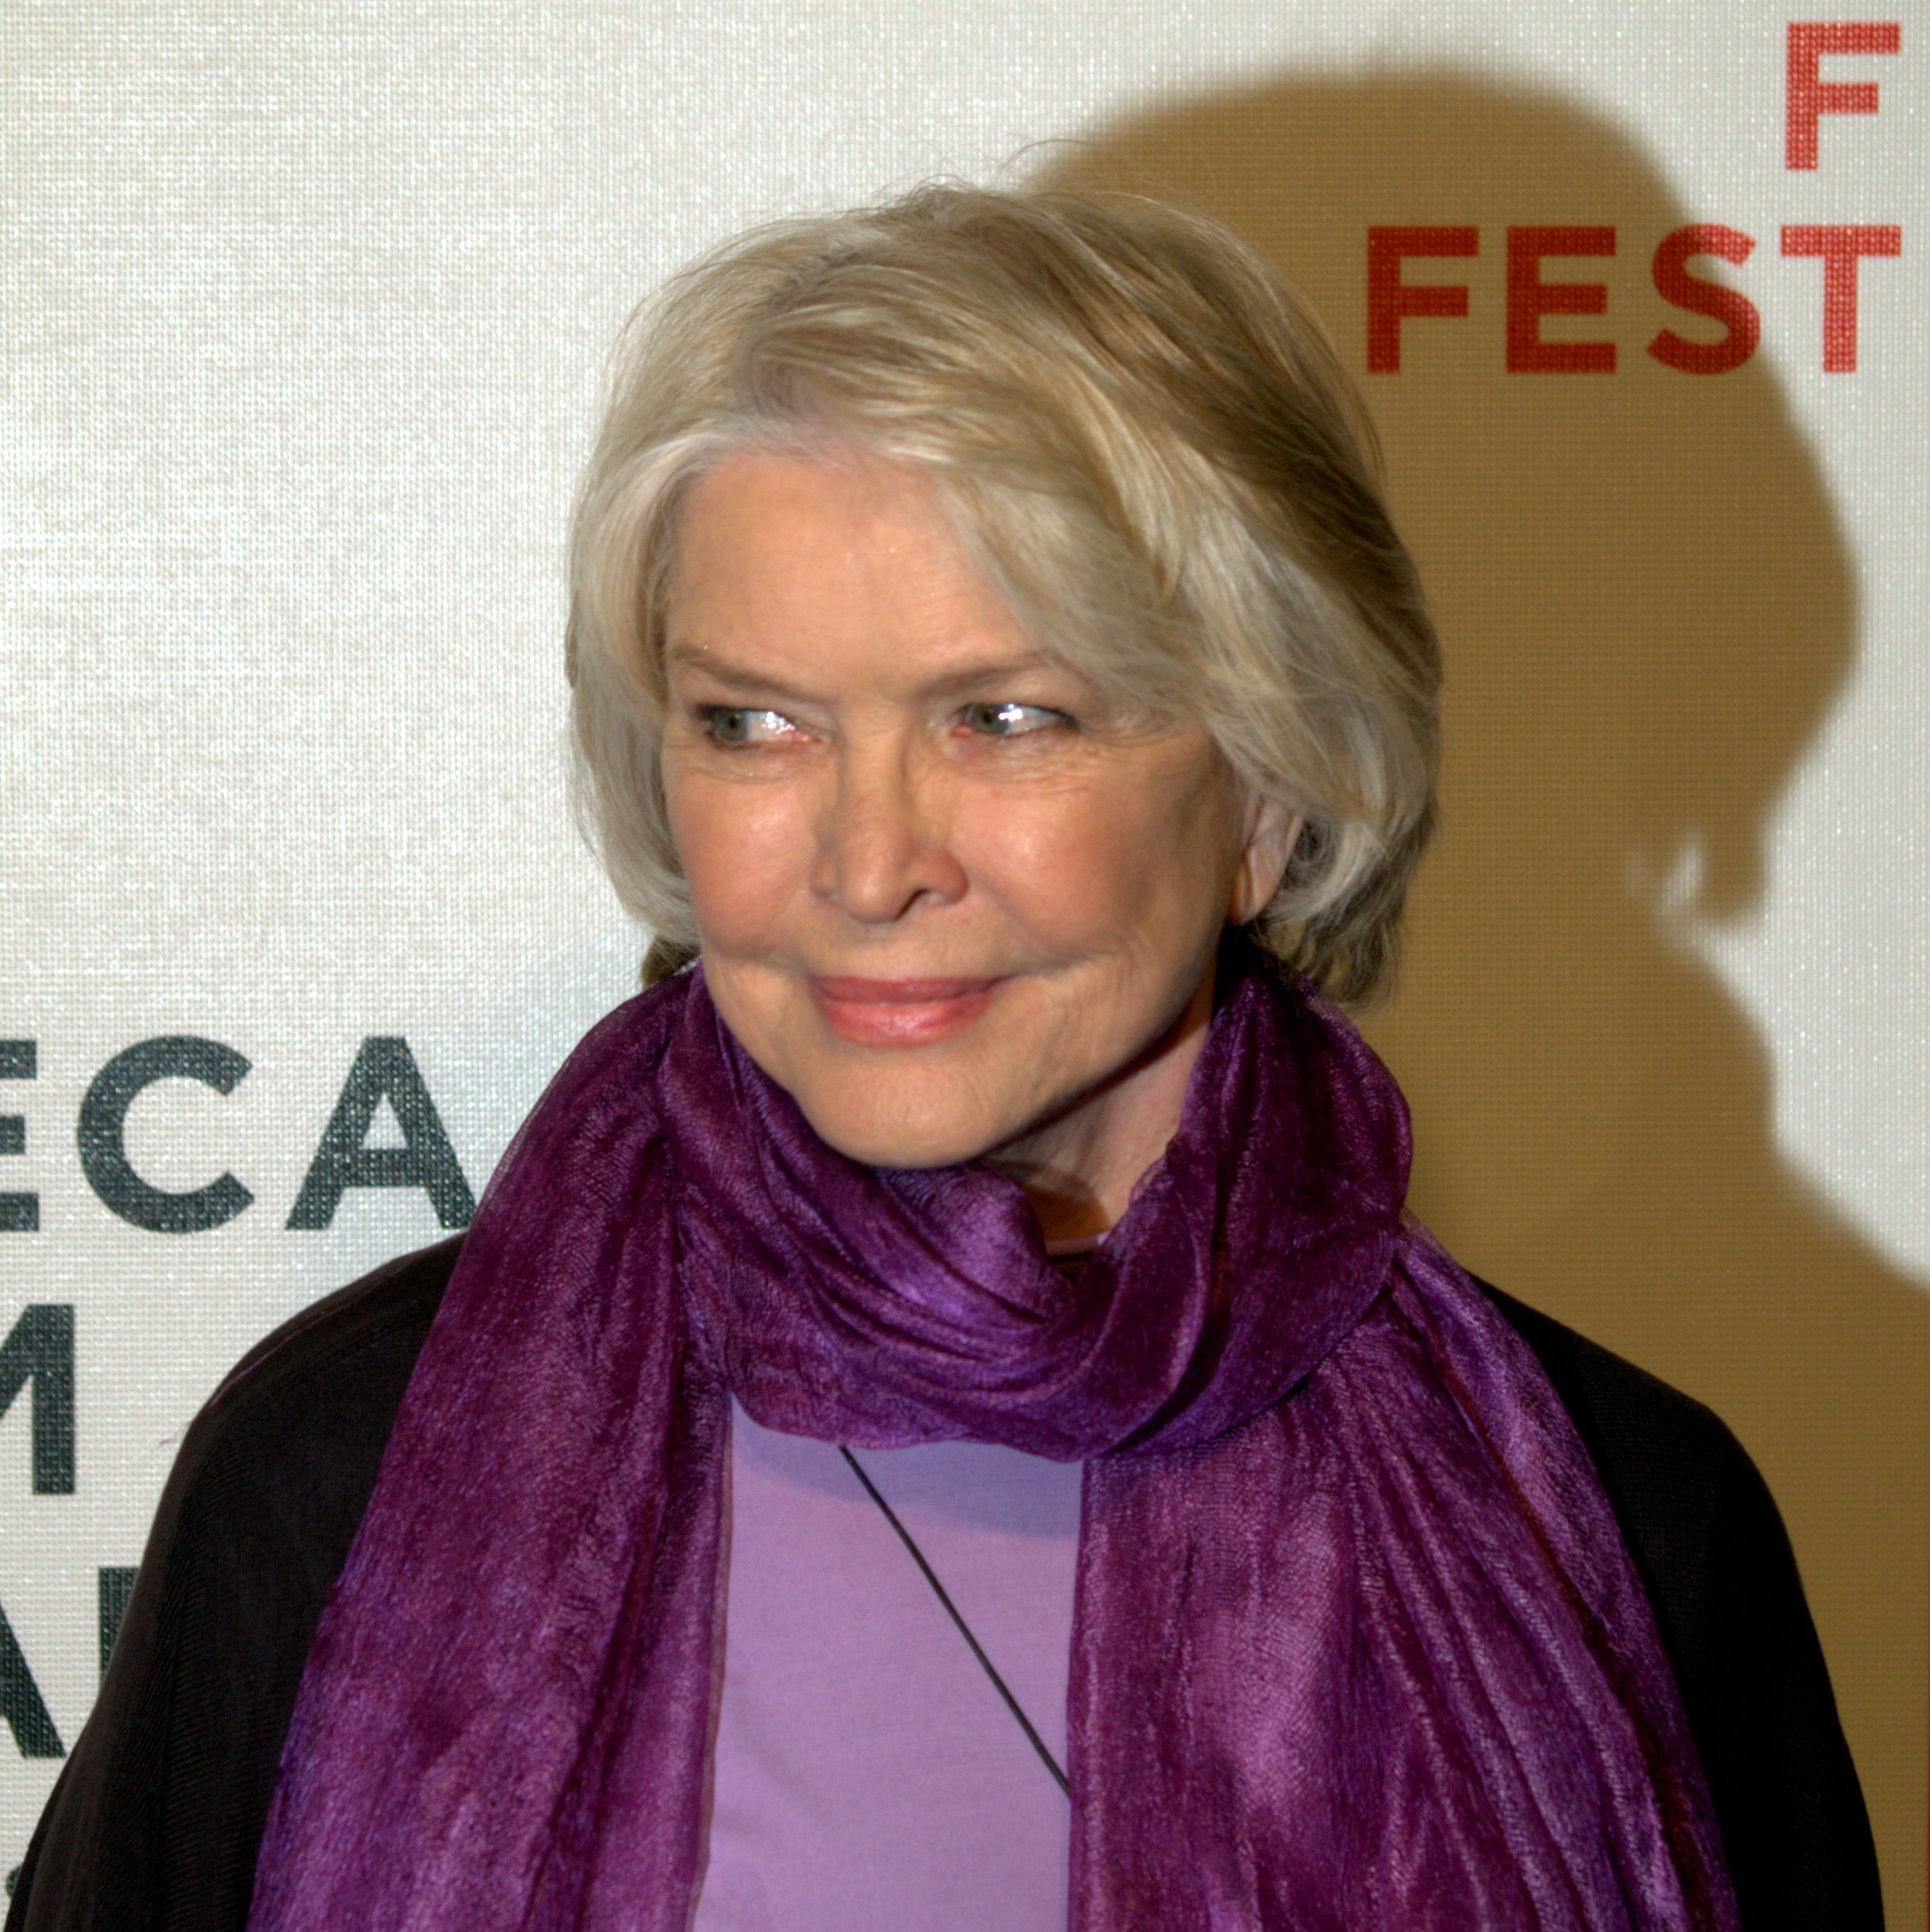 Ellen Burstyn - Wikipedia, the free encyclopedia